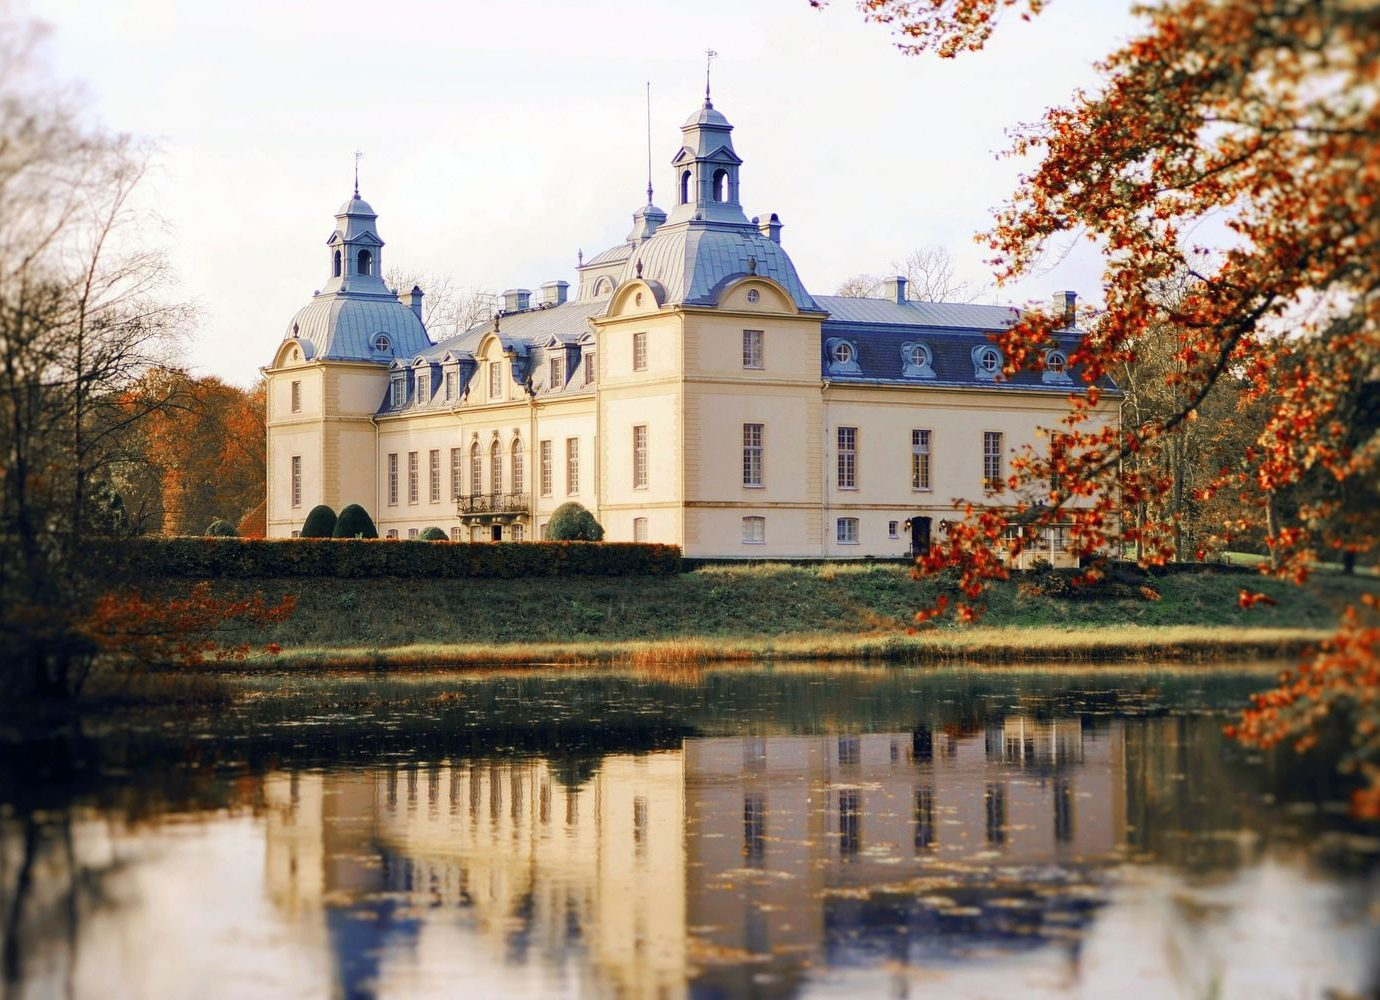 Denmark Finland Hotels Landmarks Luxury Travel Sweden tree outdoor water sky reflection château River building water castle season autumn Lake Winter waterway evening estate castle park day